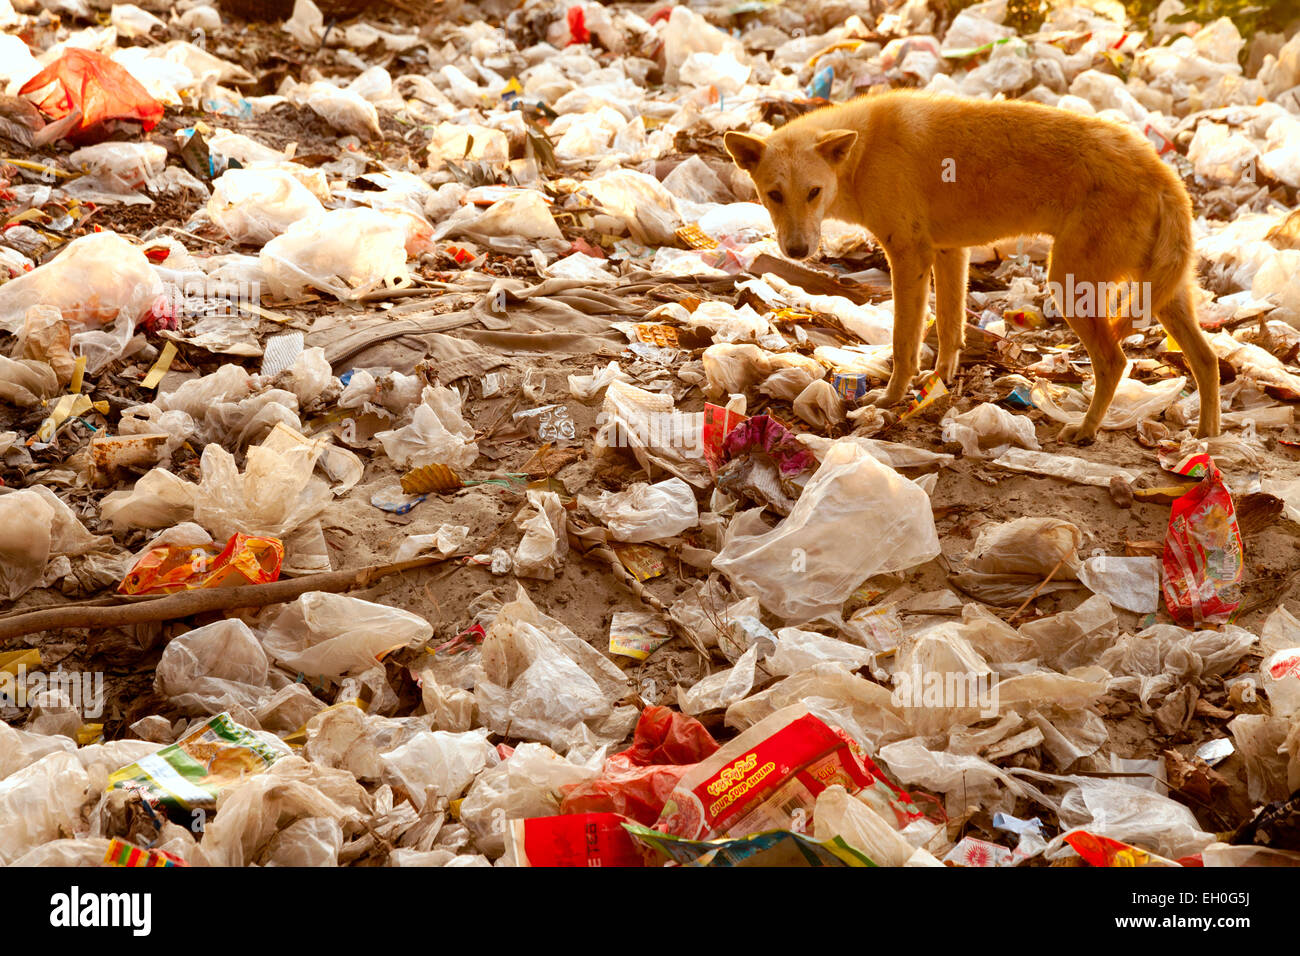 La pollution de l'Asie - un chien sur un tas de déchets de nourriture - exemple de la pollution, Mandalay, Photo Stock